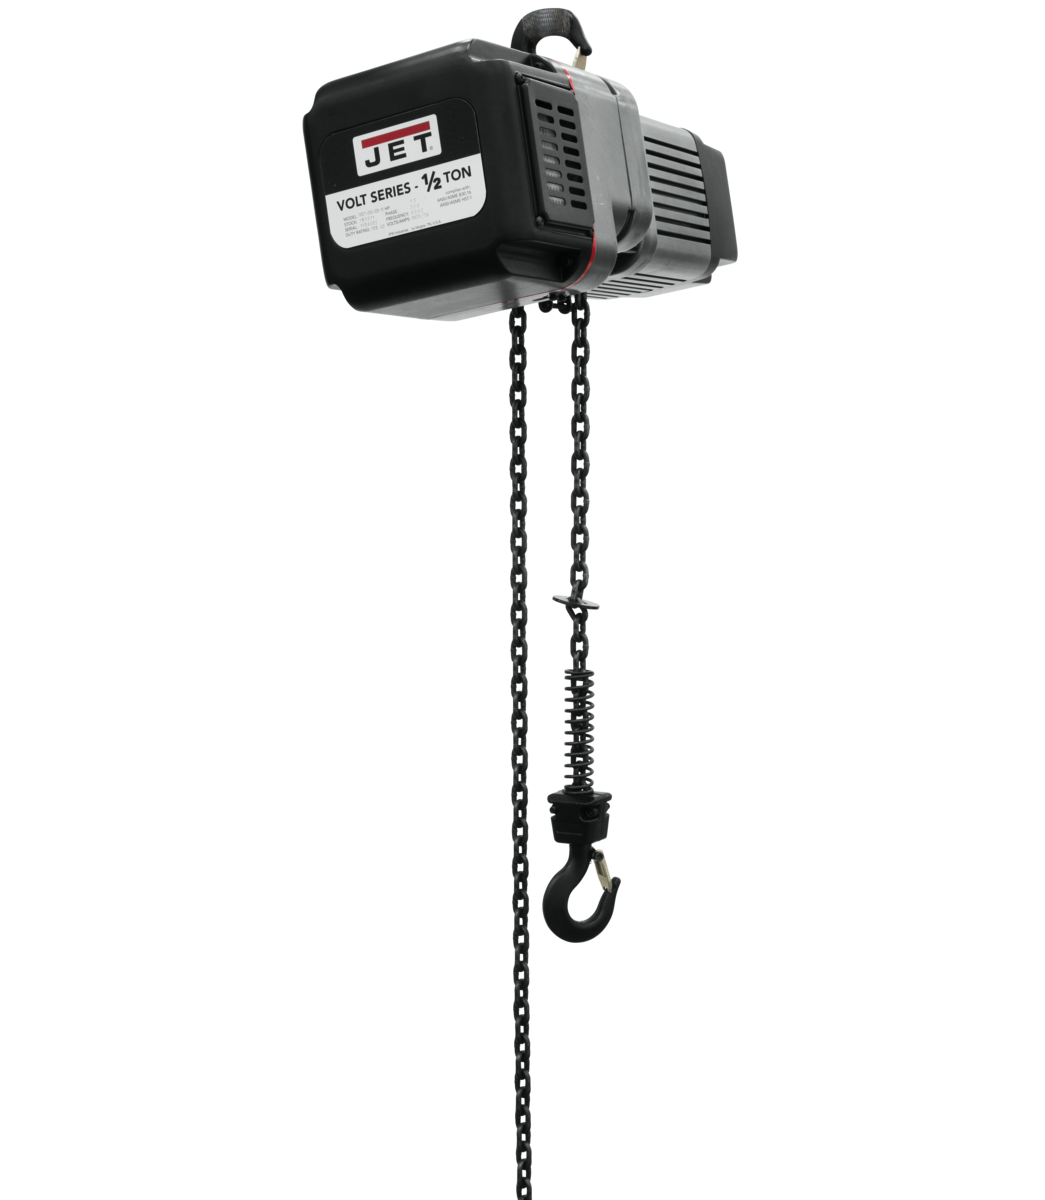 VOLT 1/2T VARIABLE-SPEED ELECTRIC HOIST 1PH/3PH 230V 15' LIFT